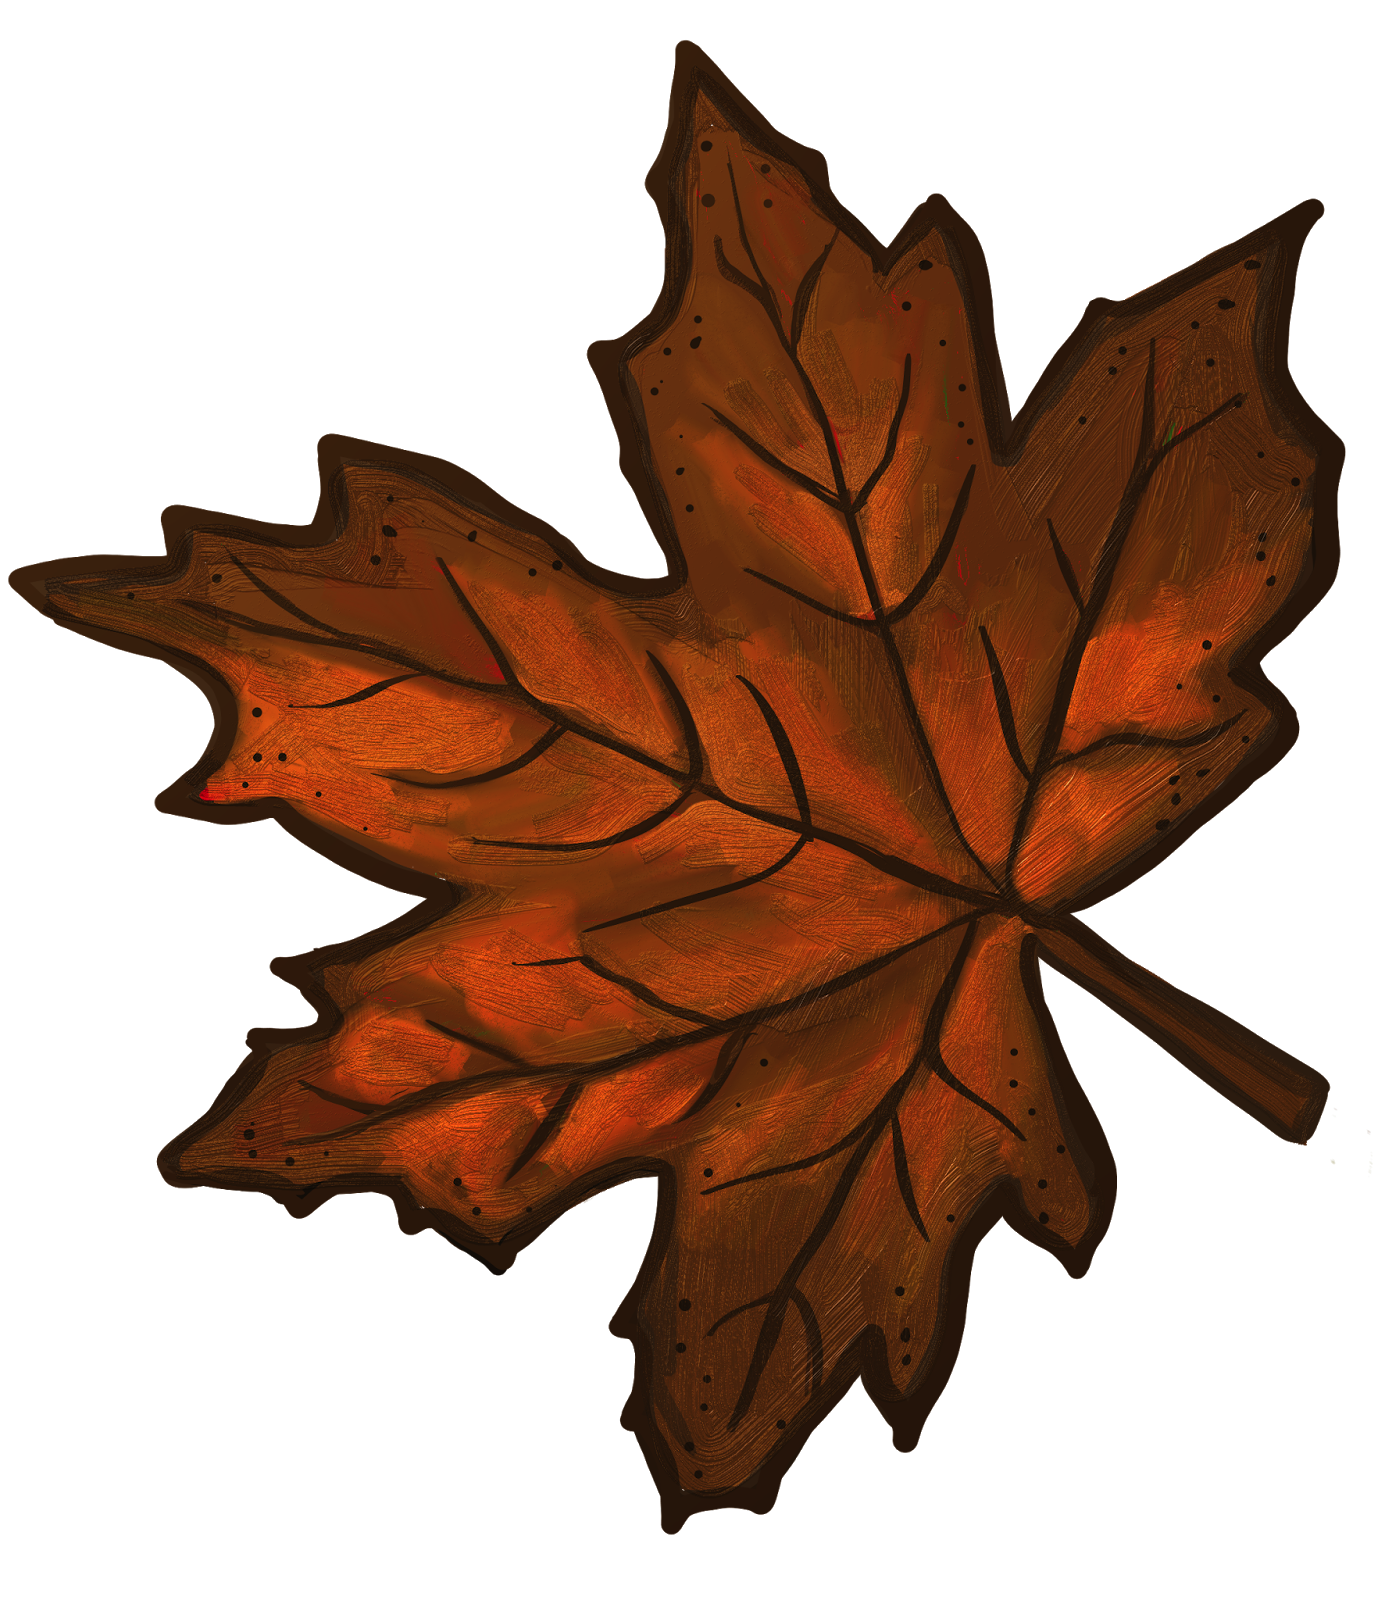 Brown clipart brown leaf Brown leaves maple Maple Maple